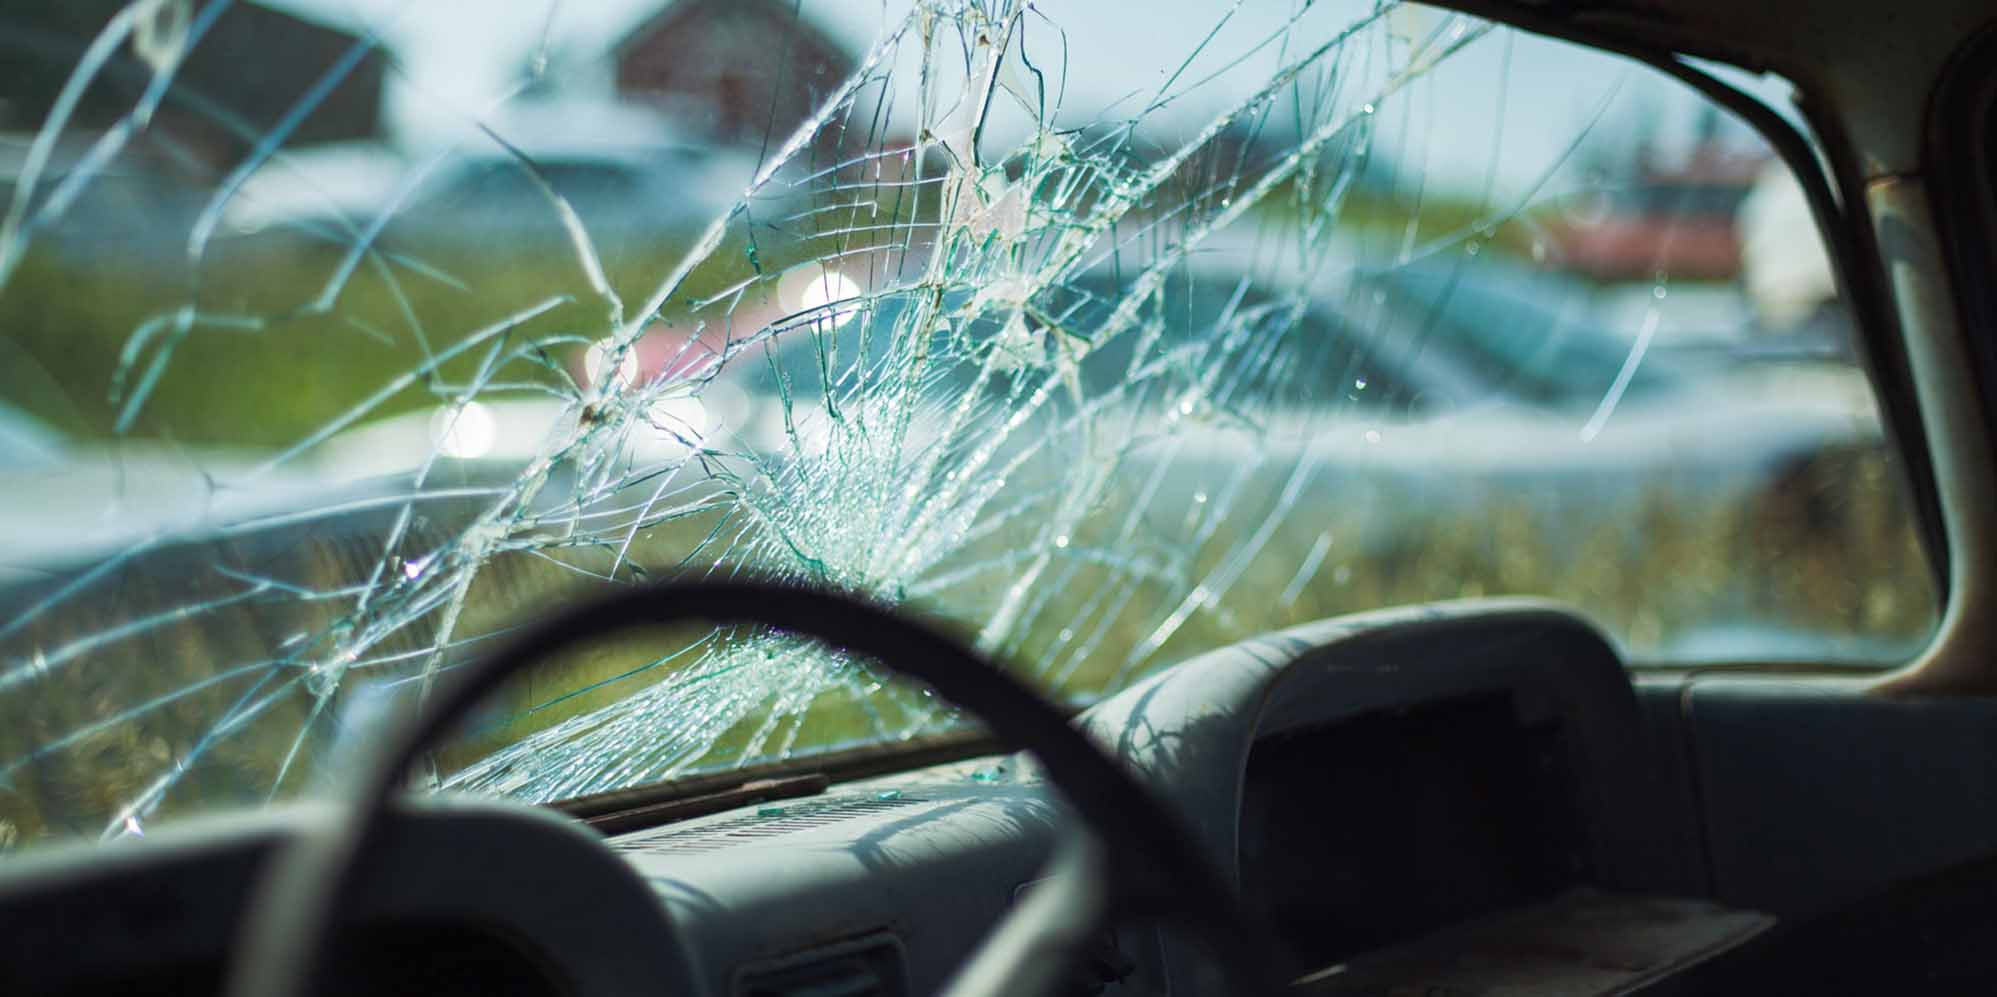 7 Best Baltimore Auto Glass Companies Expertise